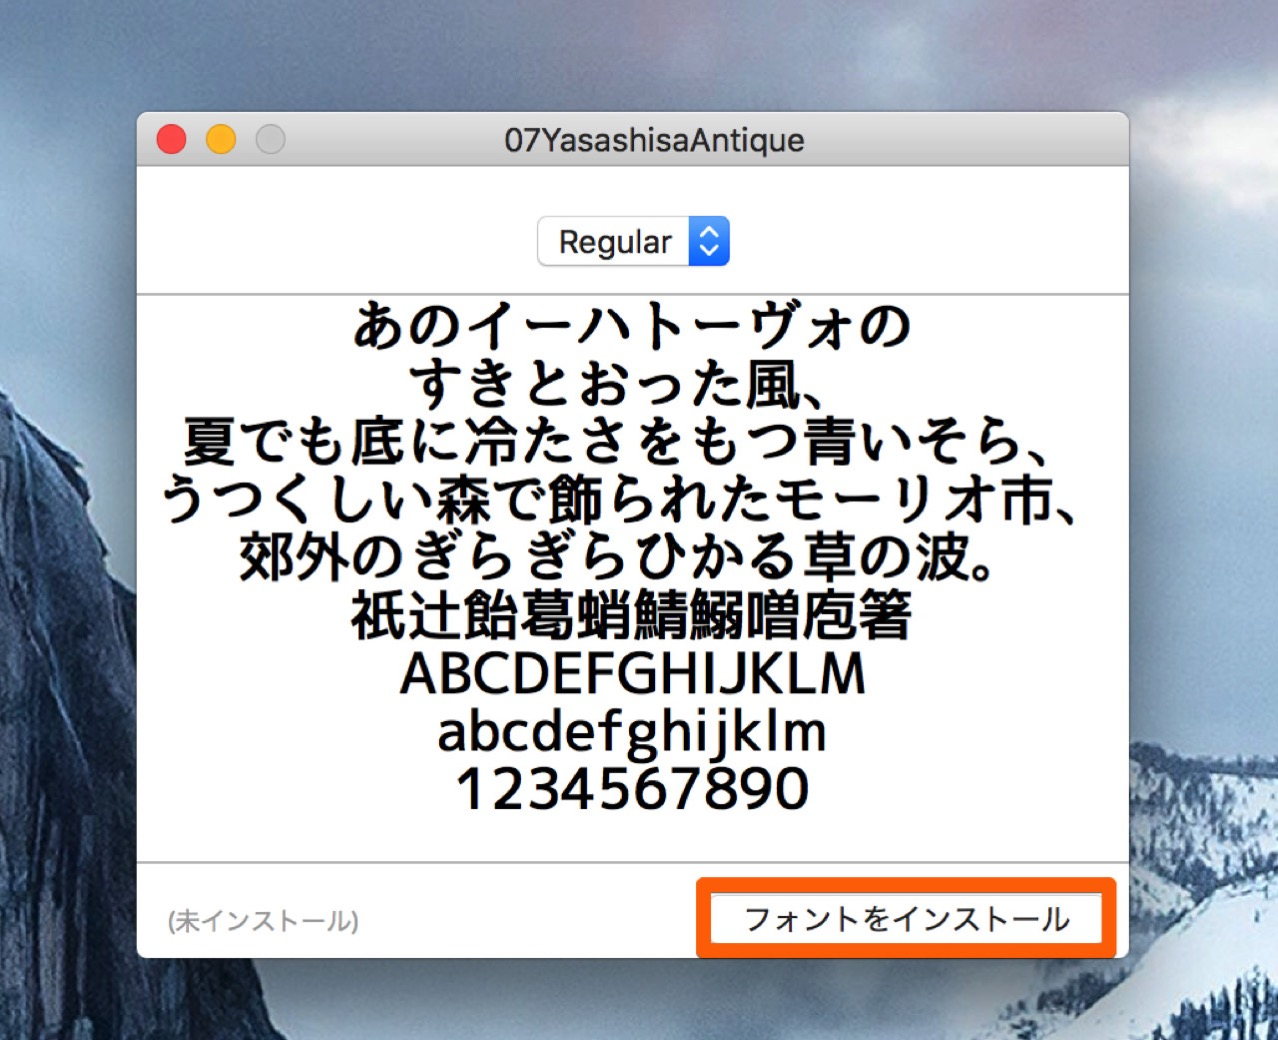 How to install free font on mac5